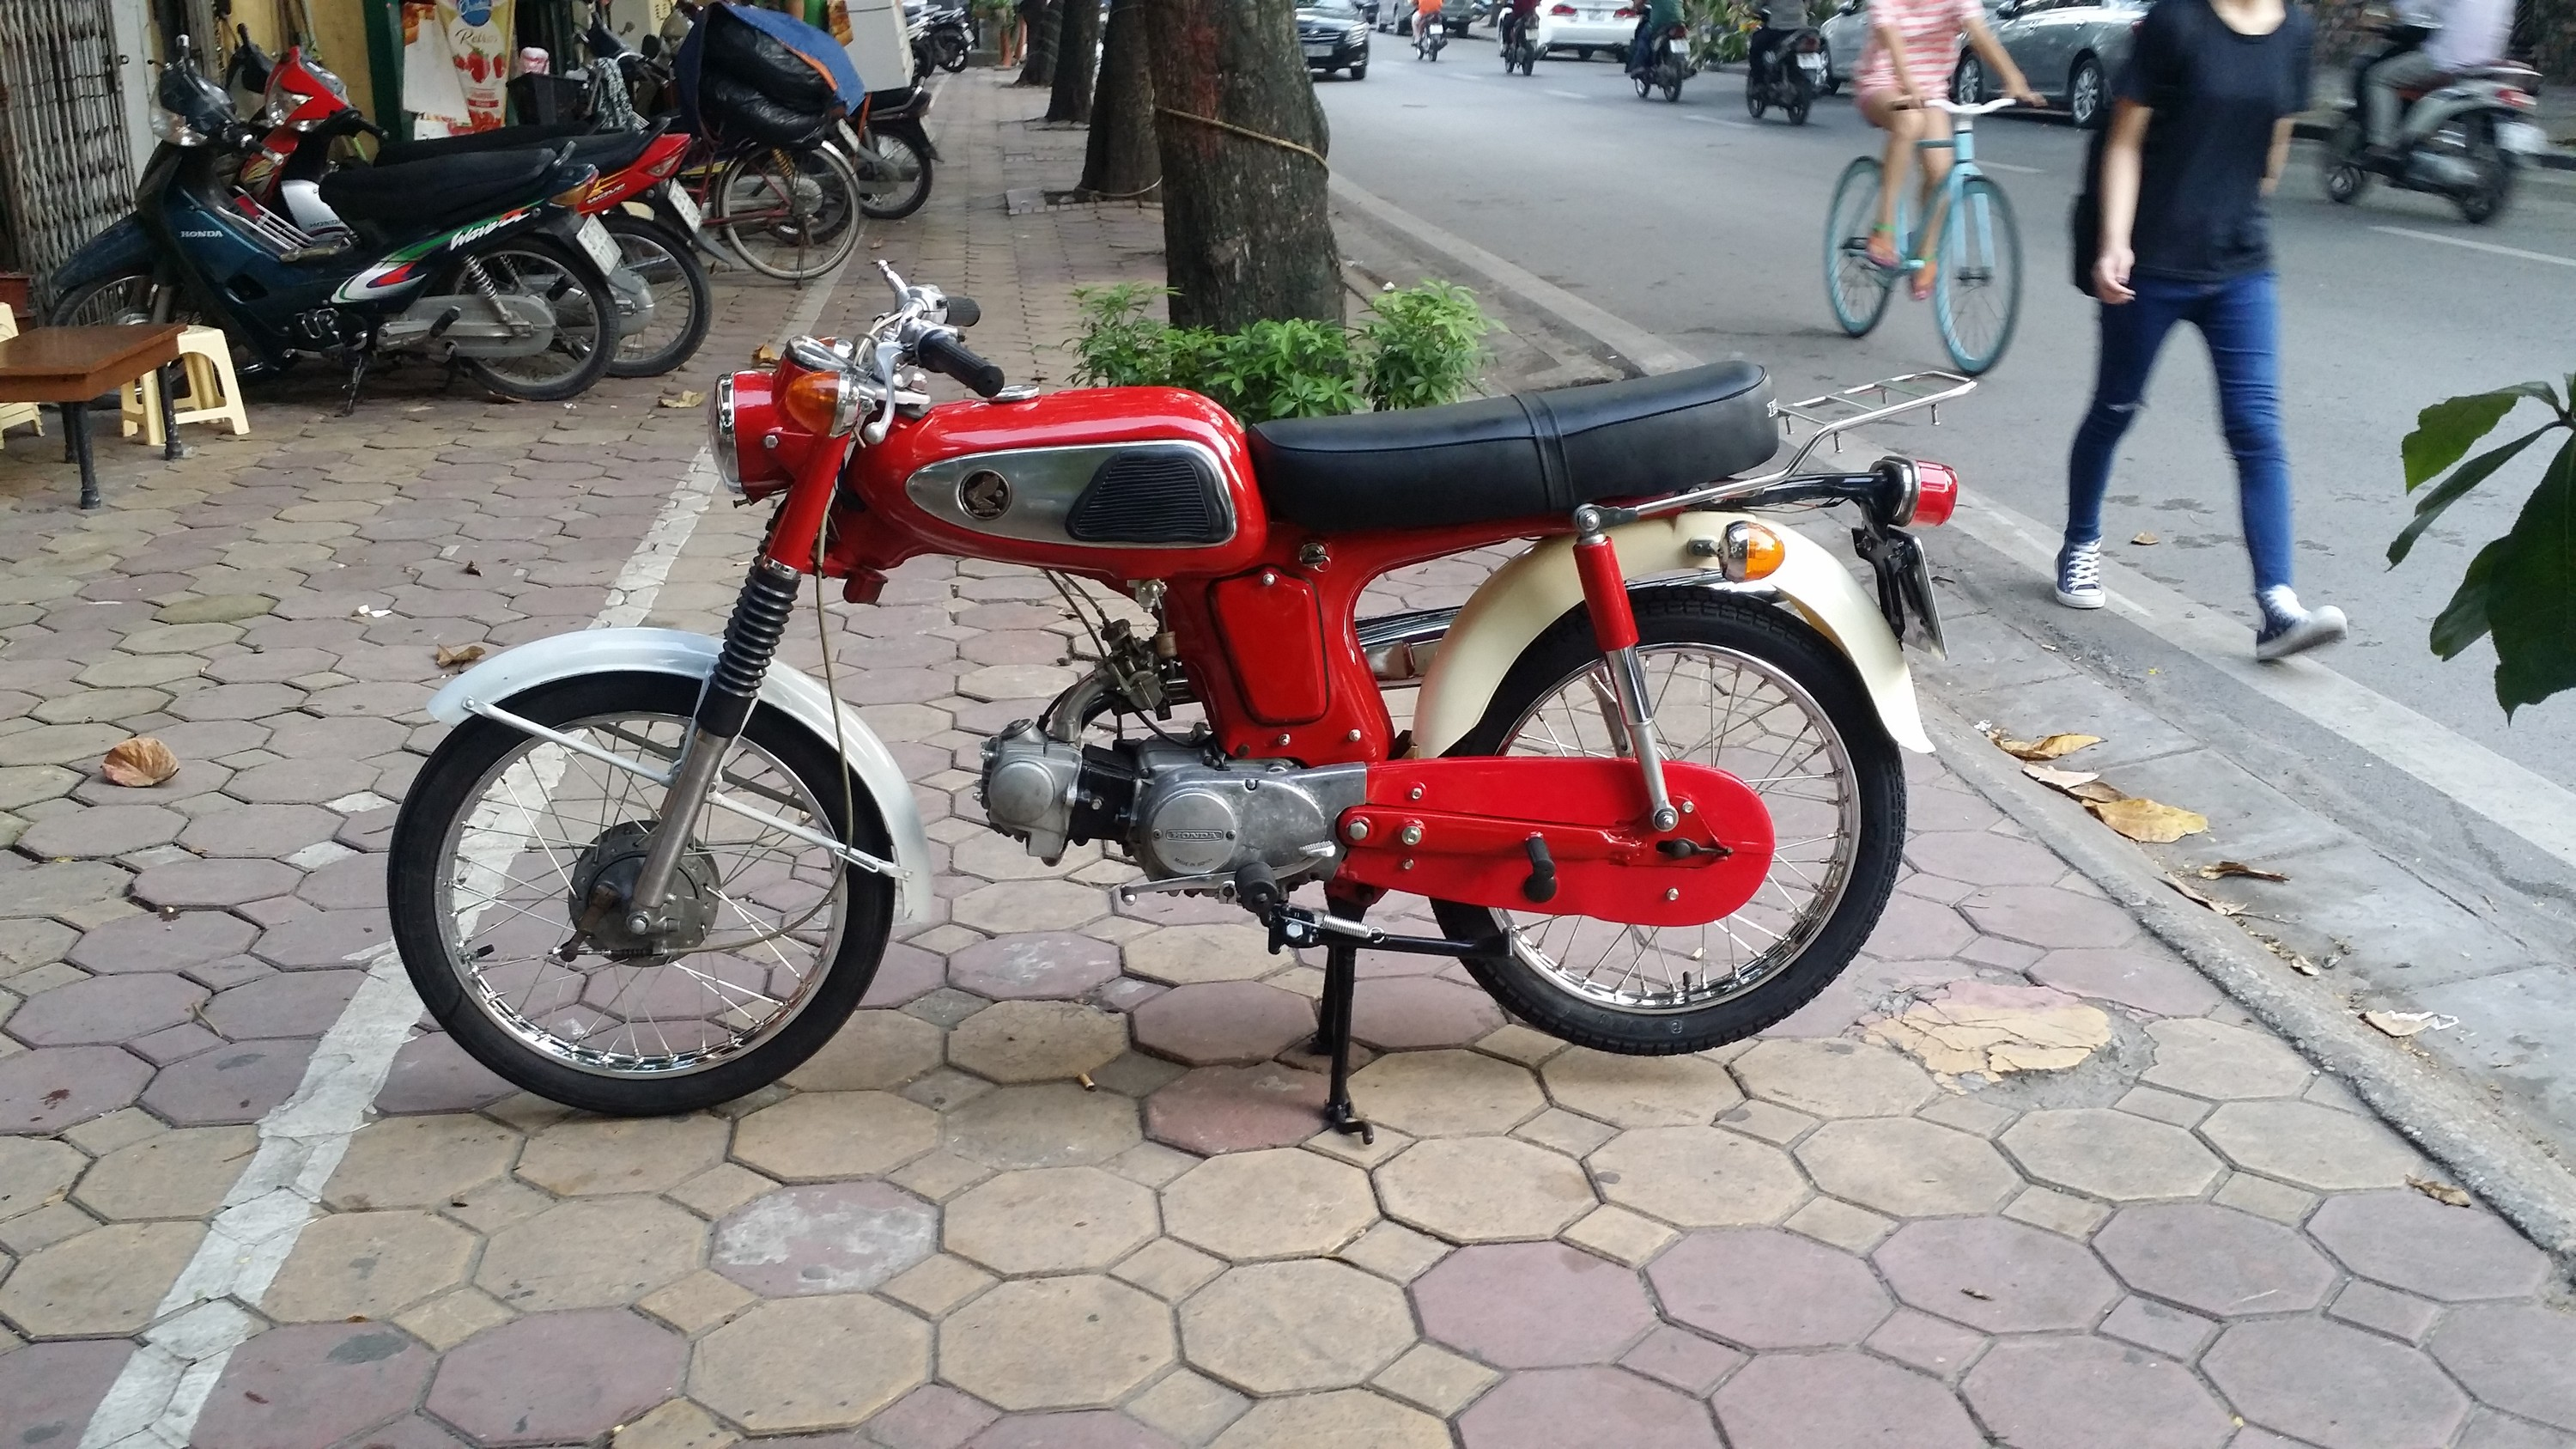 That classic look is priceless in Vietnam!